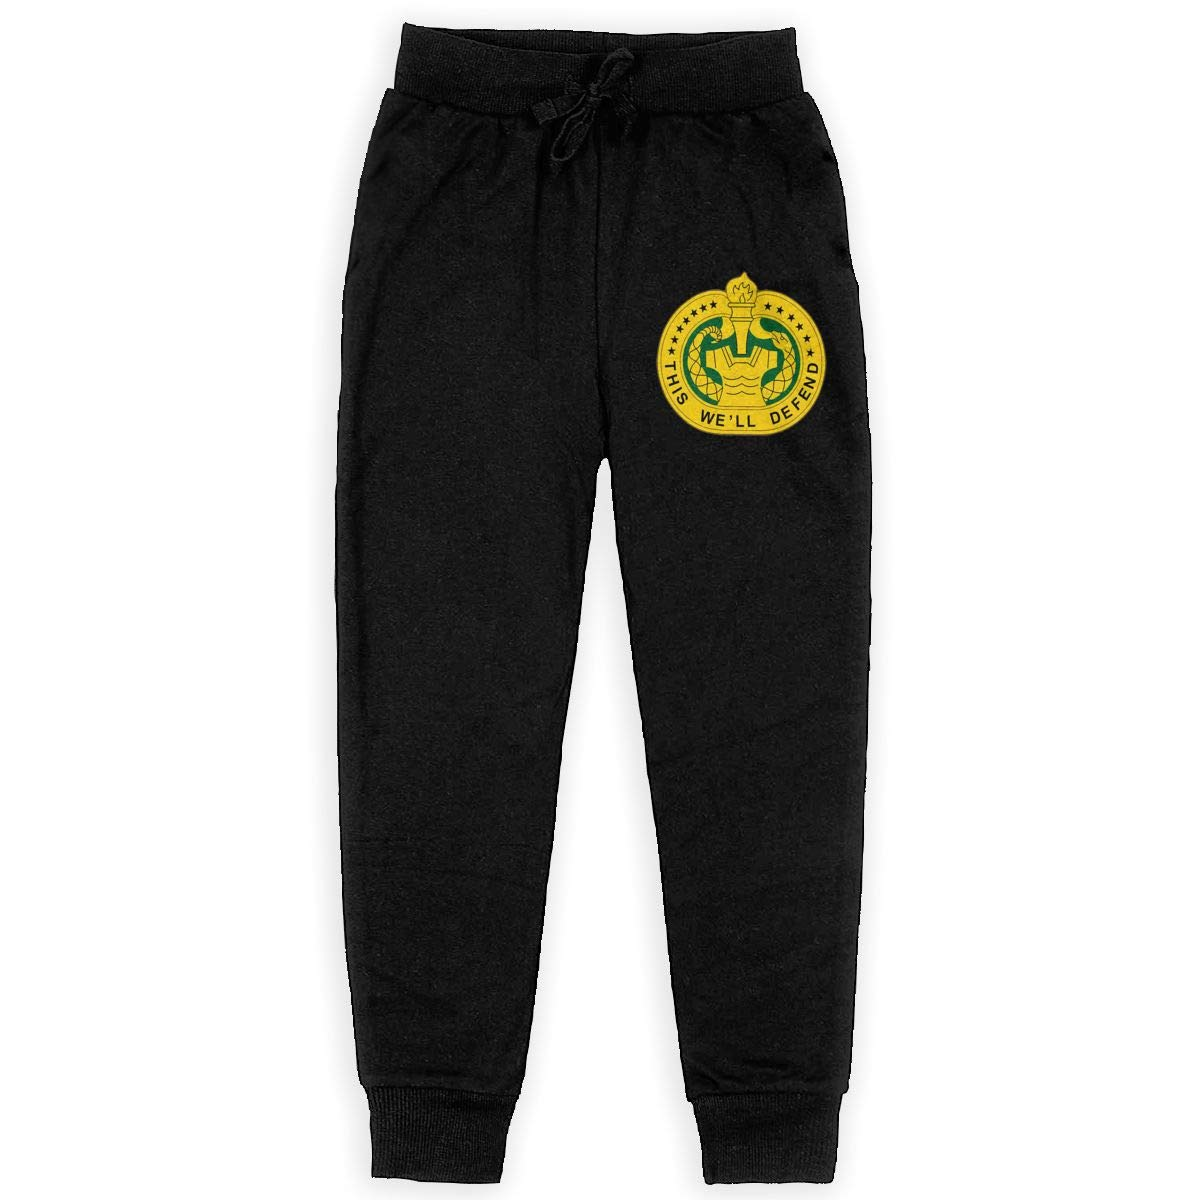 Dunpaiaa U S Army Drill Sergeant Logo Boys Sweatpants,Joggers Sport Training Pants Trousers Black